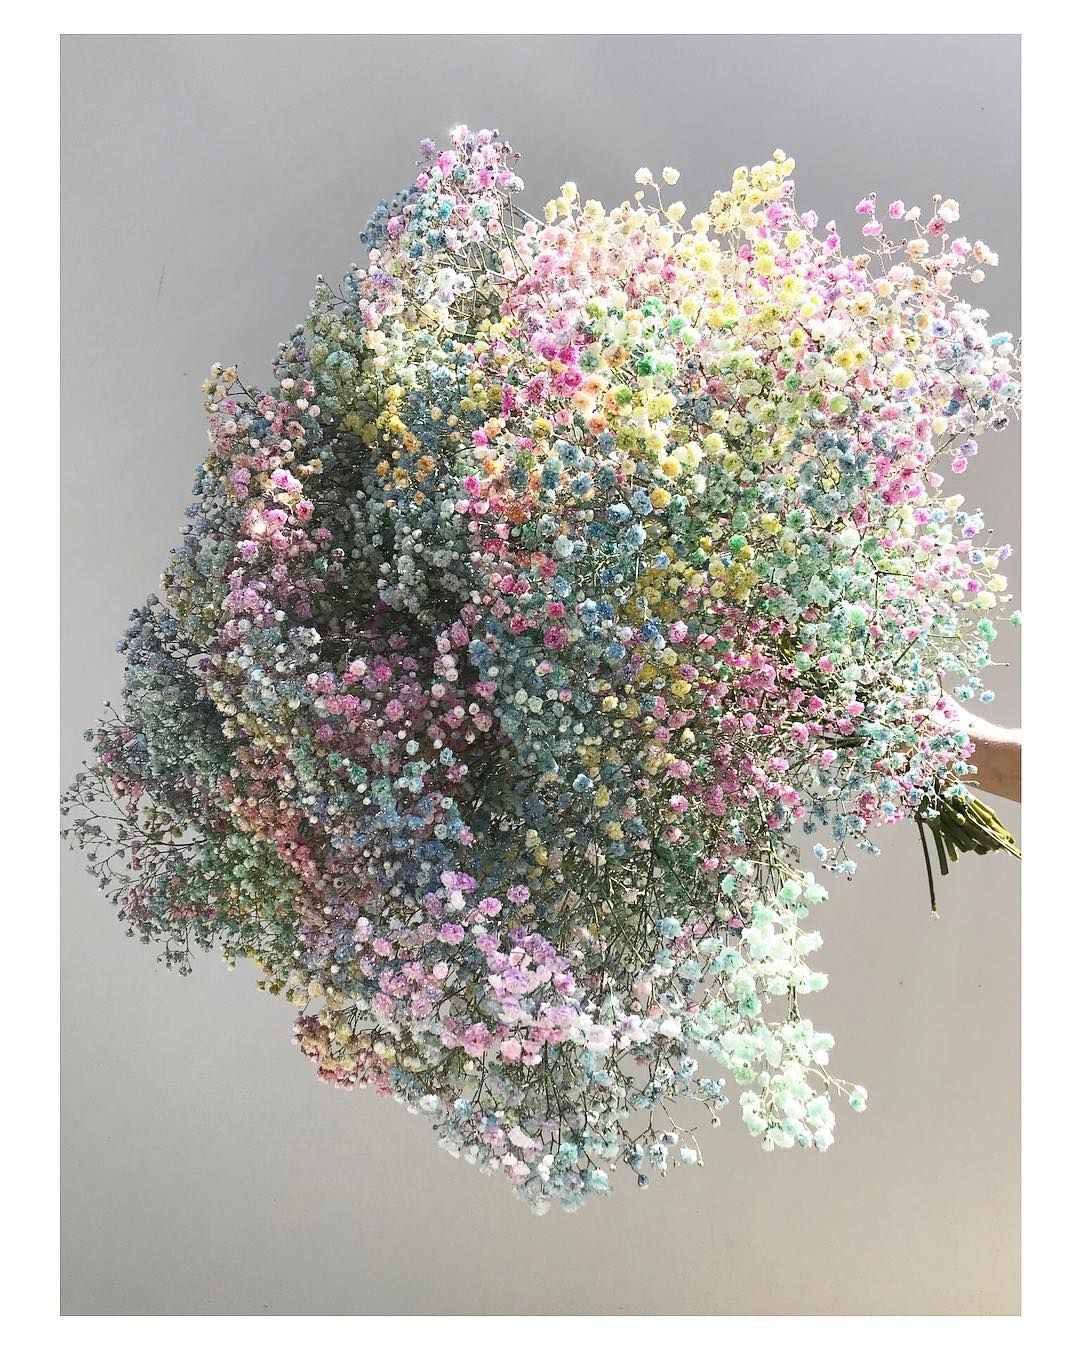 Hamblins On Instagram Rainbow Sparkles This Baby S Breath Is Breathtakingly Sparkly And Beautiful In Real Life Super Pre Dried Flowers Babys Breath Bouquet